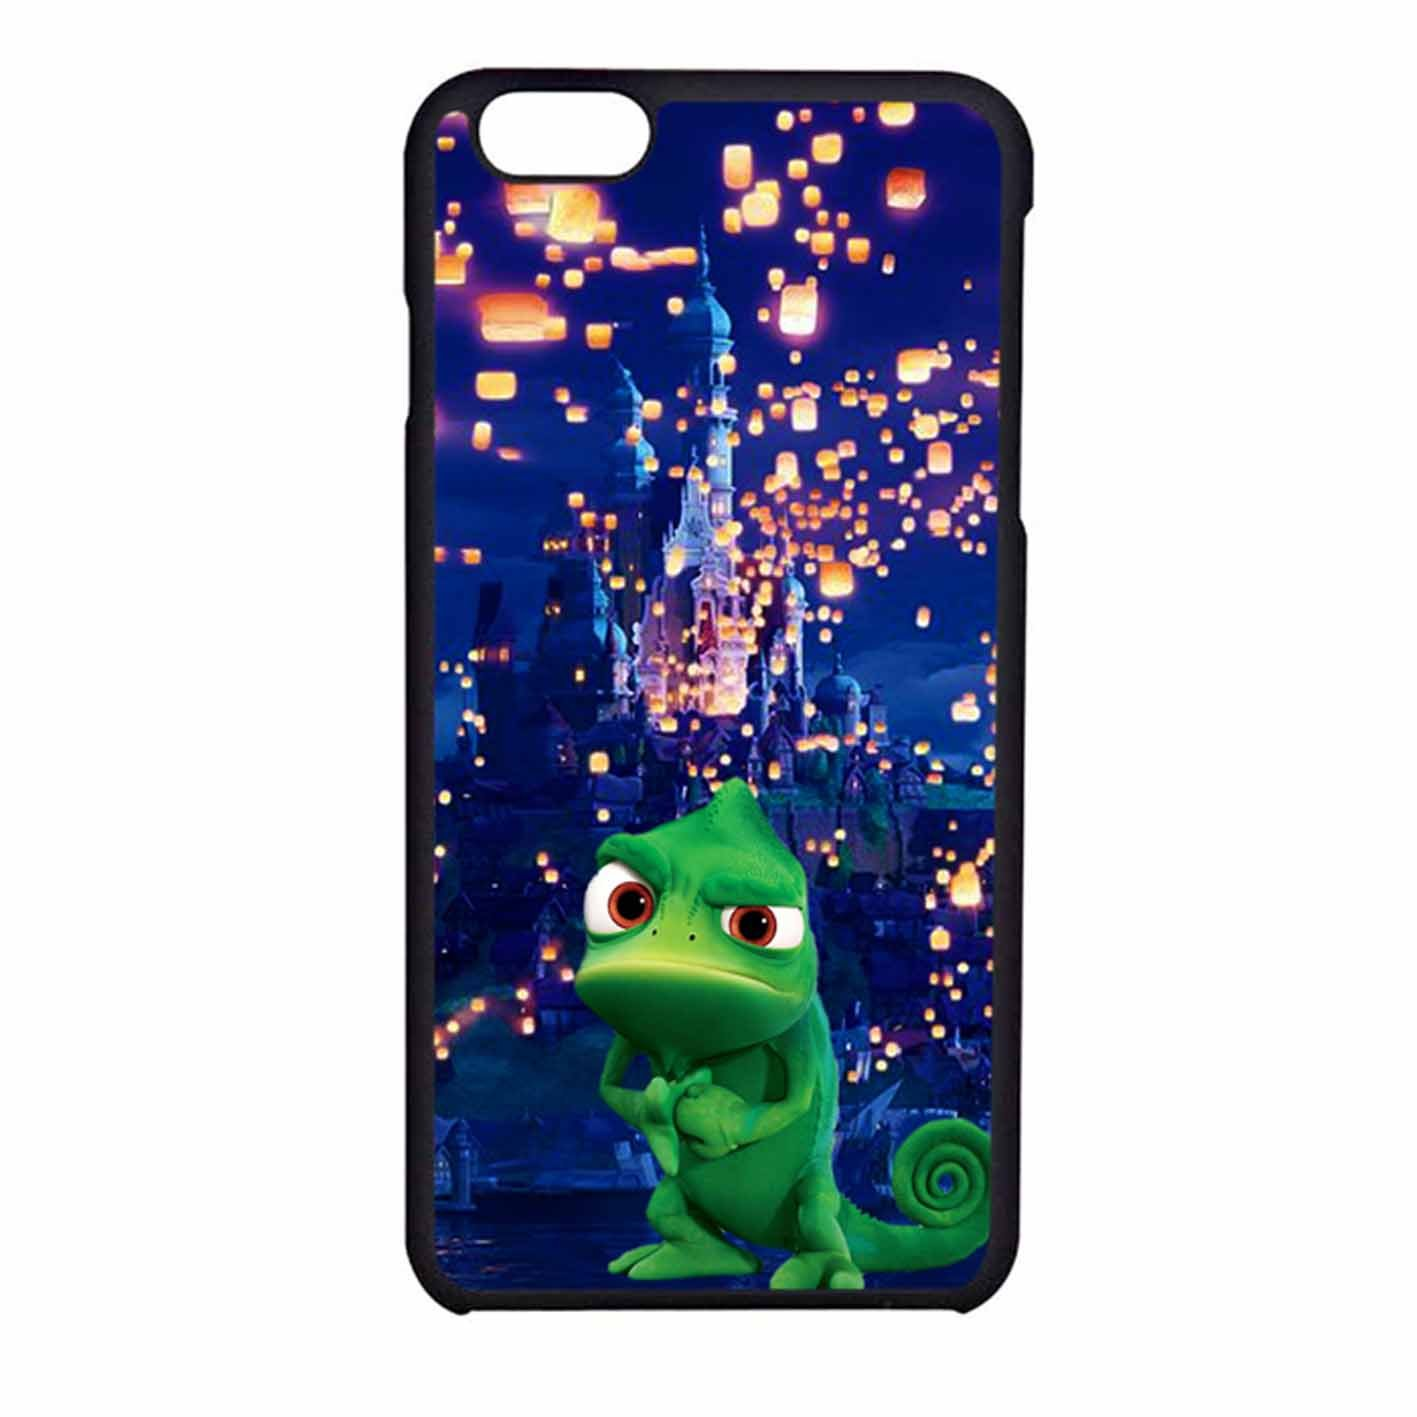 Disney Tangled Pascal Lantern Castle Iphone 6 Case Iphone